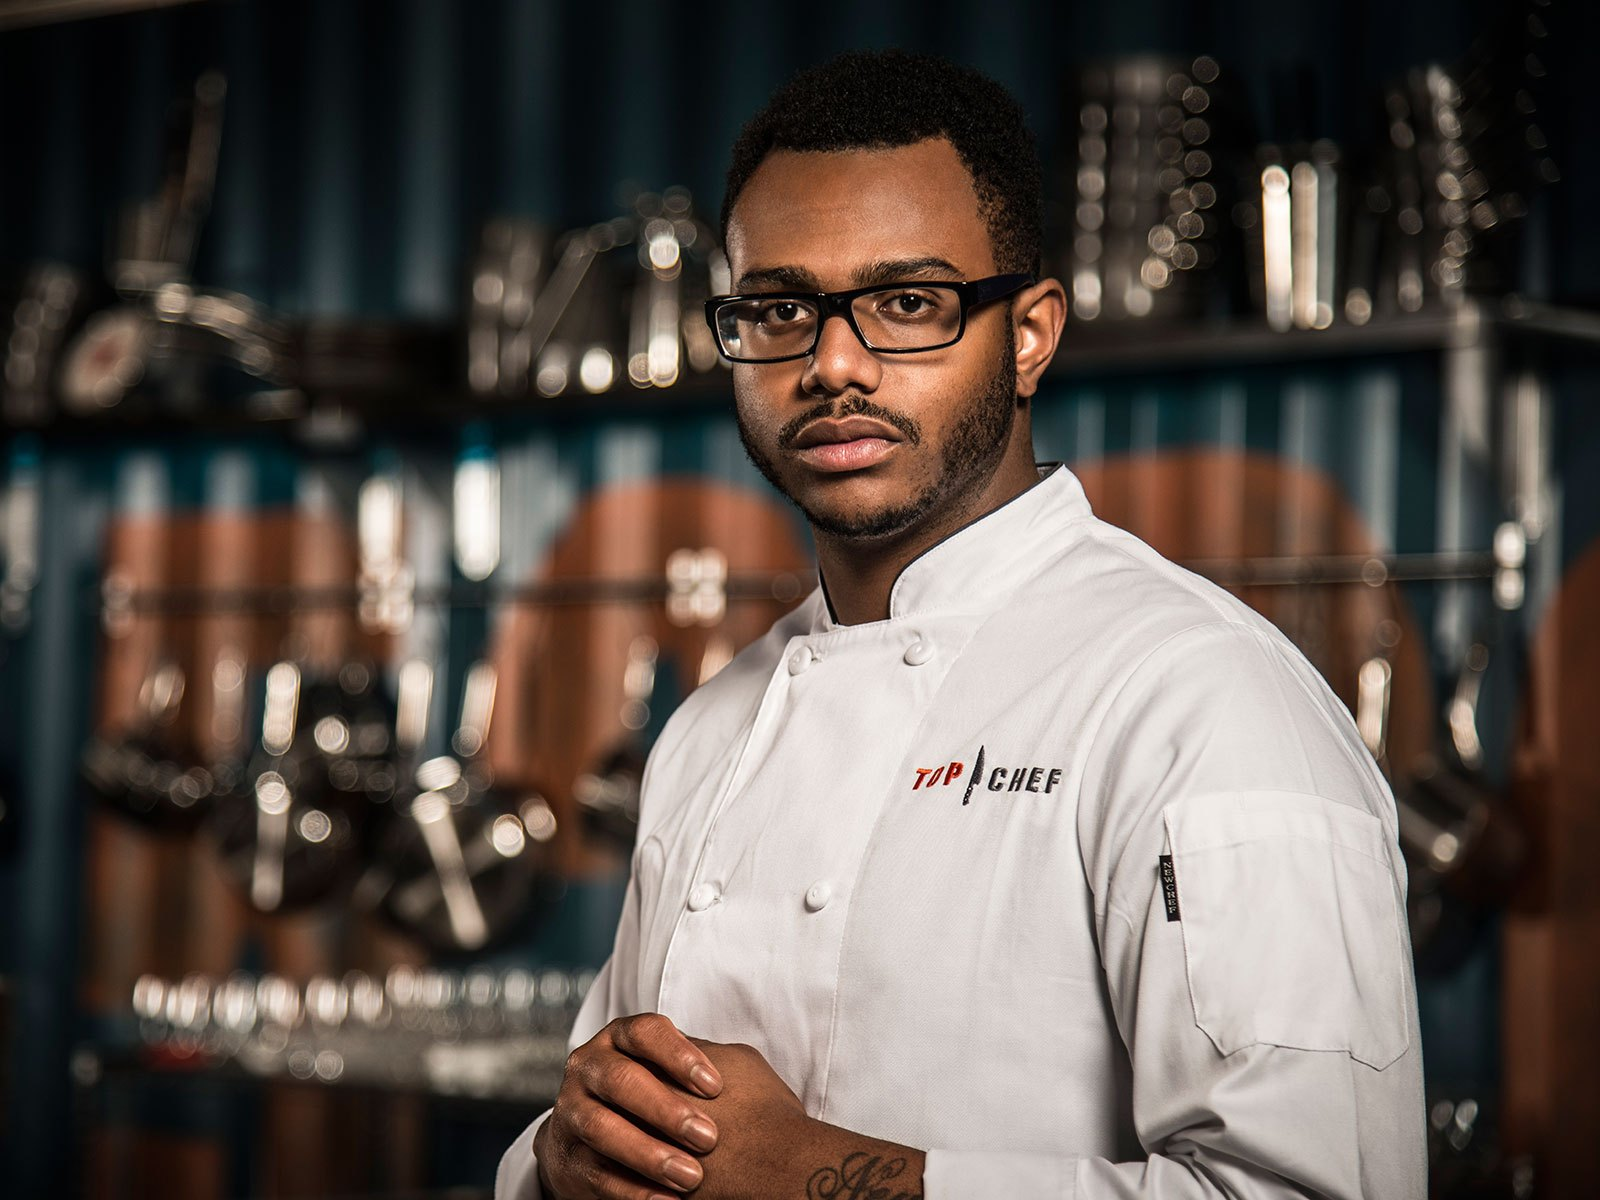 Top Chef Kwame Onwuachi is the guest speaker at this year's Opening Ceremony.